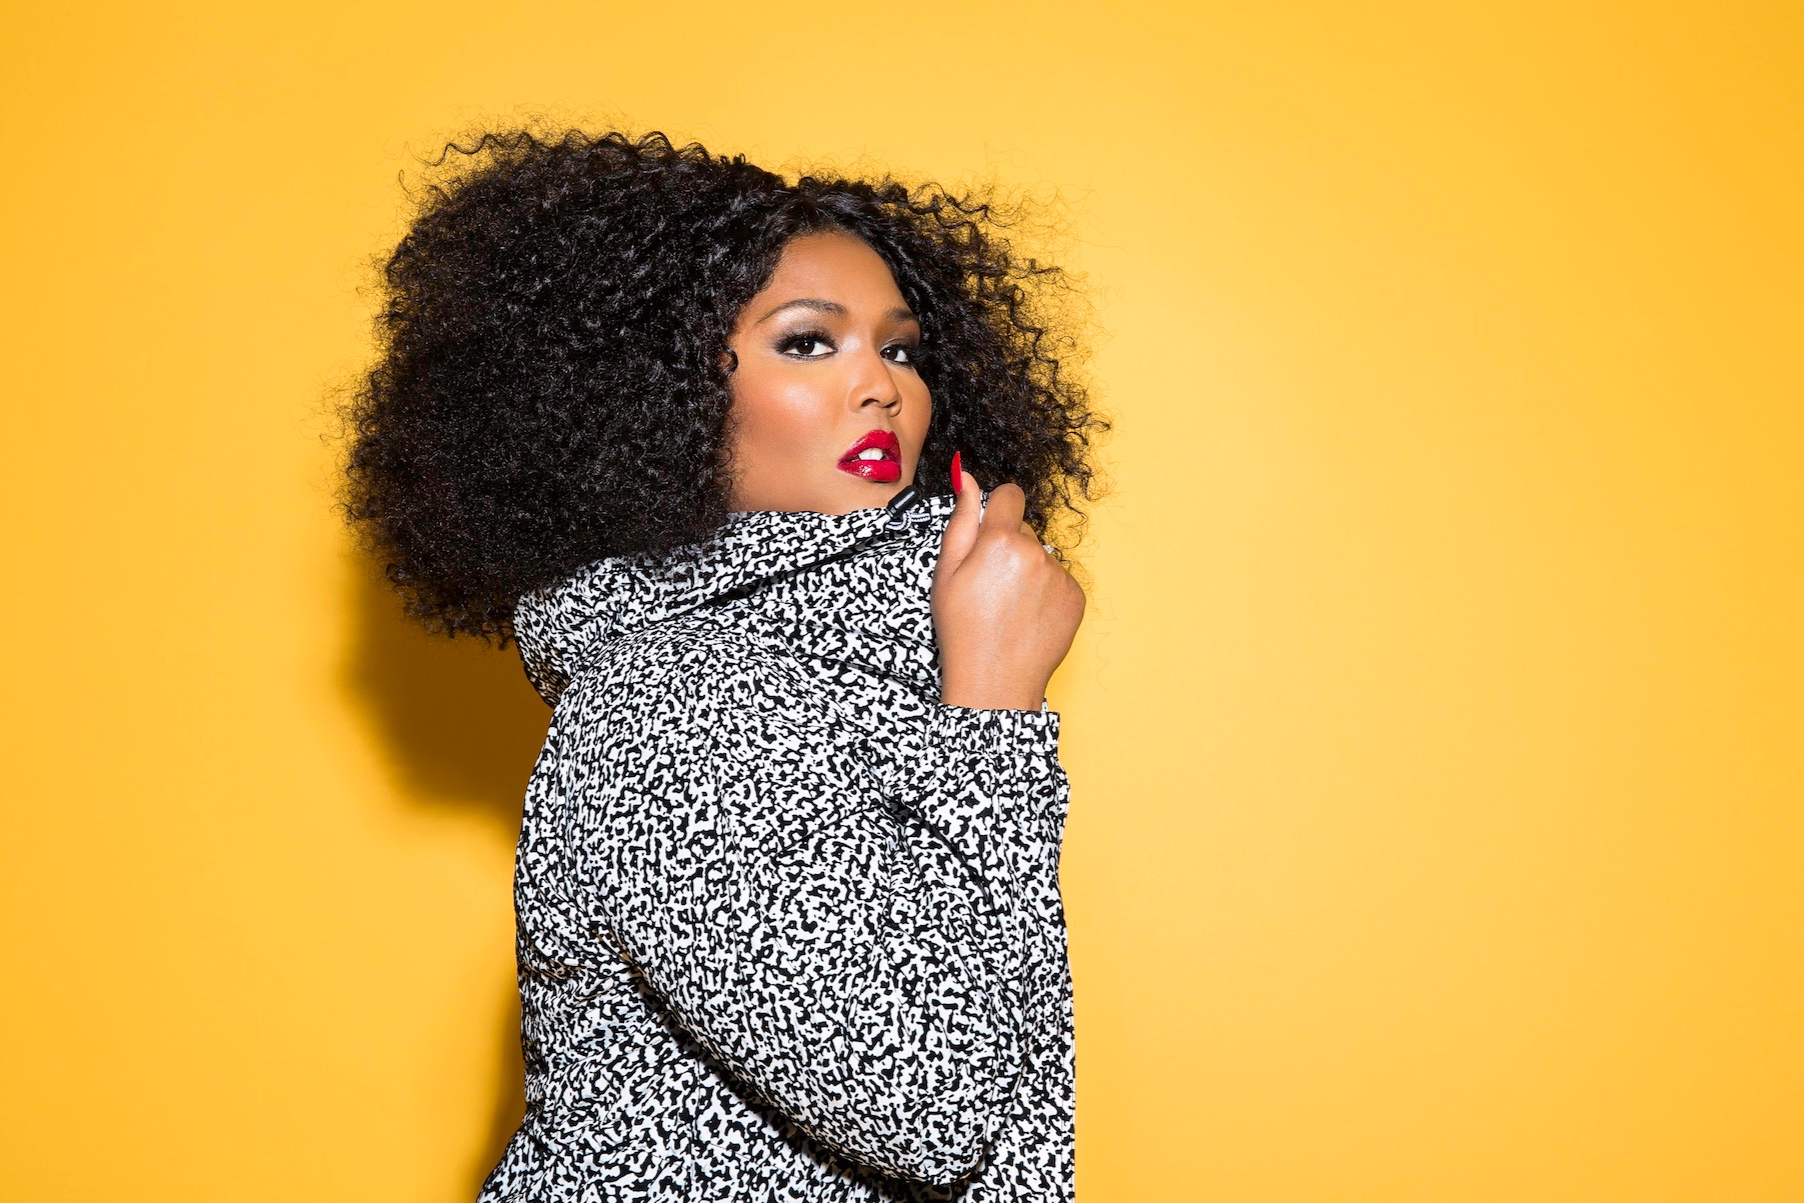 Lizzo-Press-Photo-6-High-Res-Jabari-Jacobs-.jpg